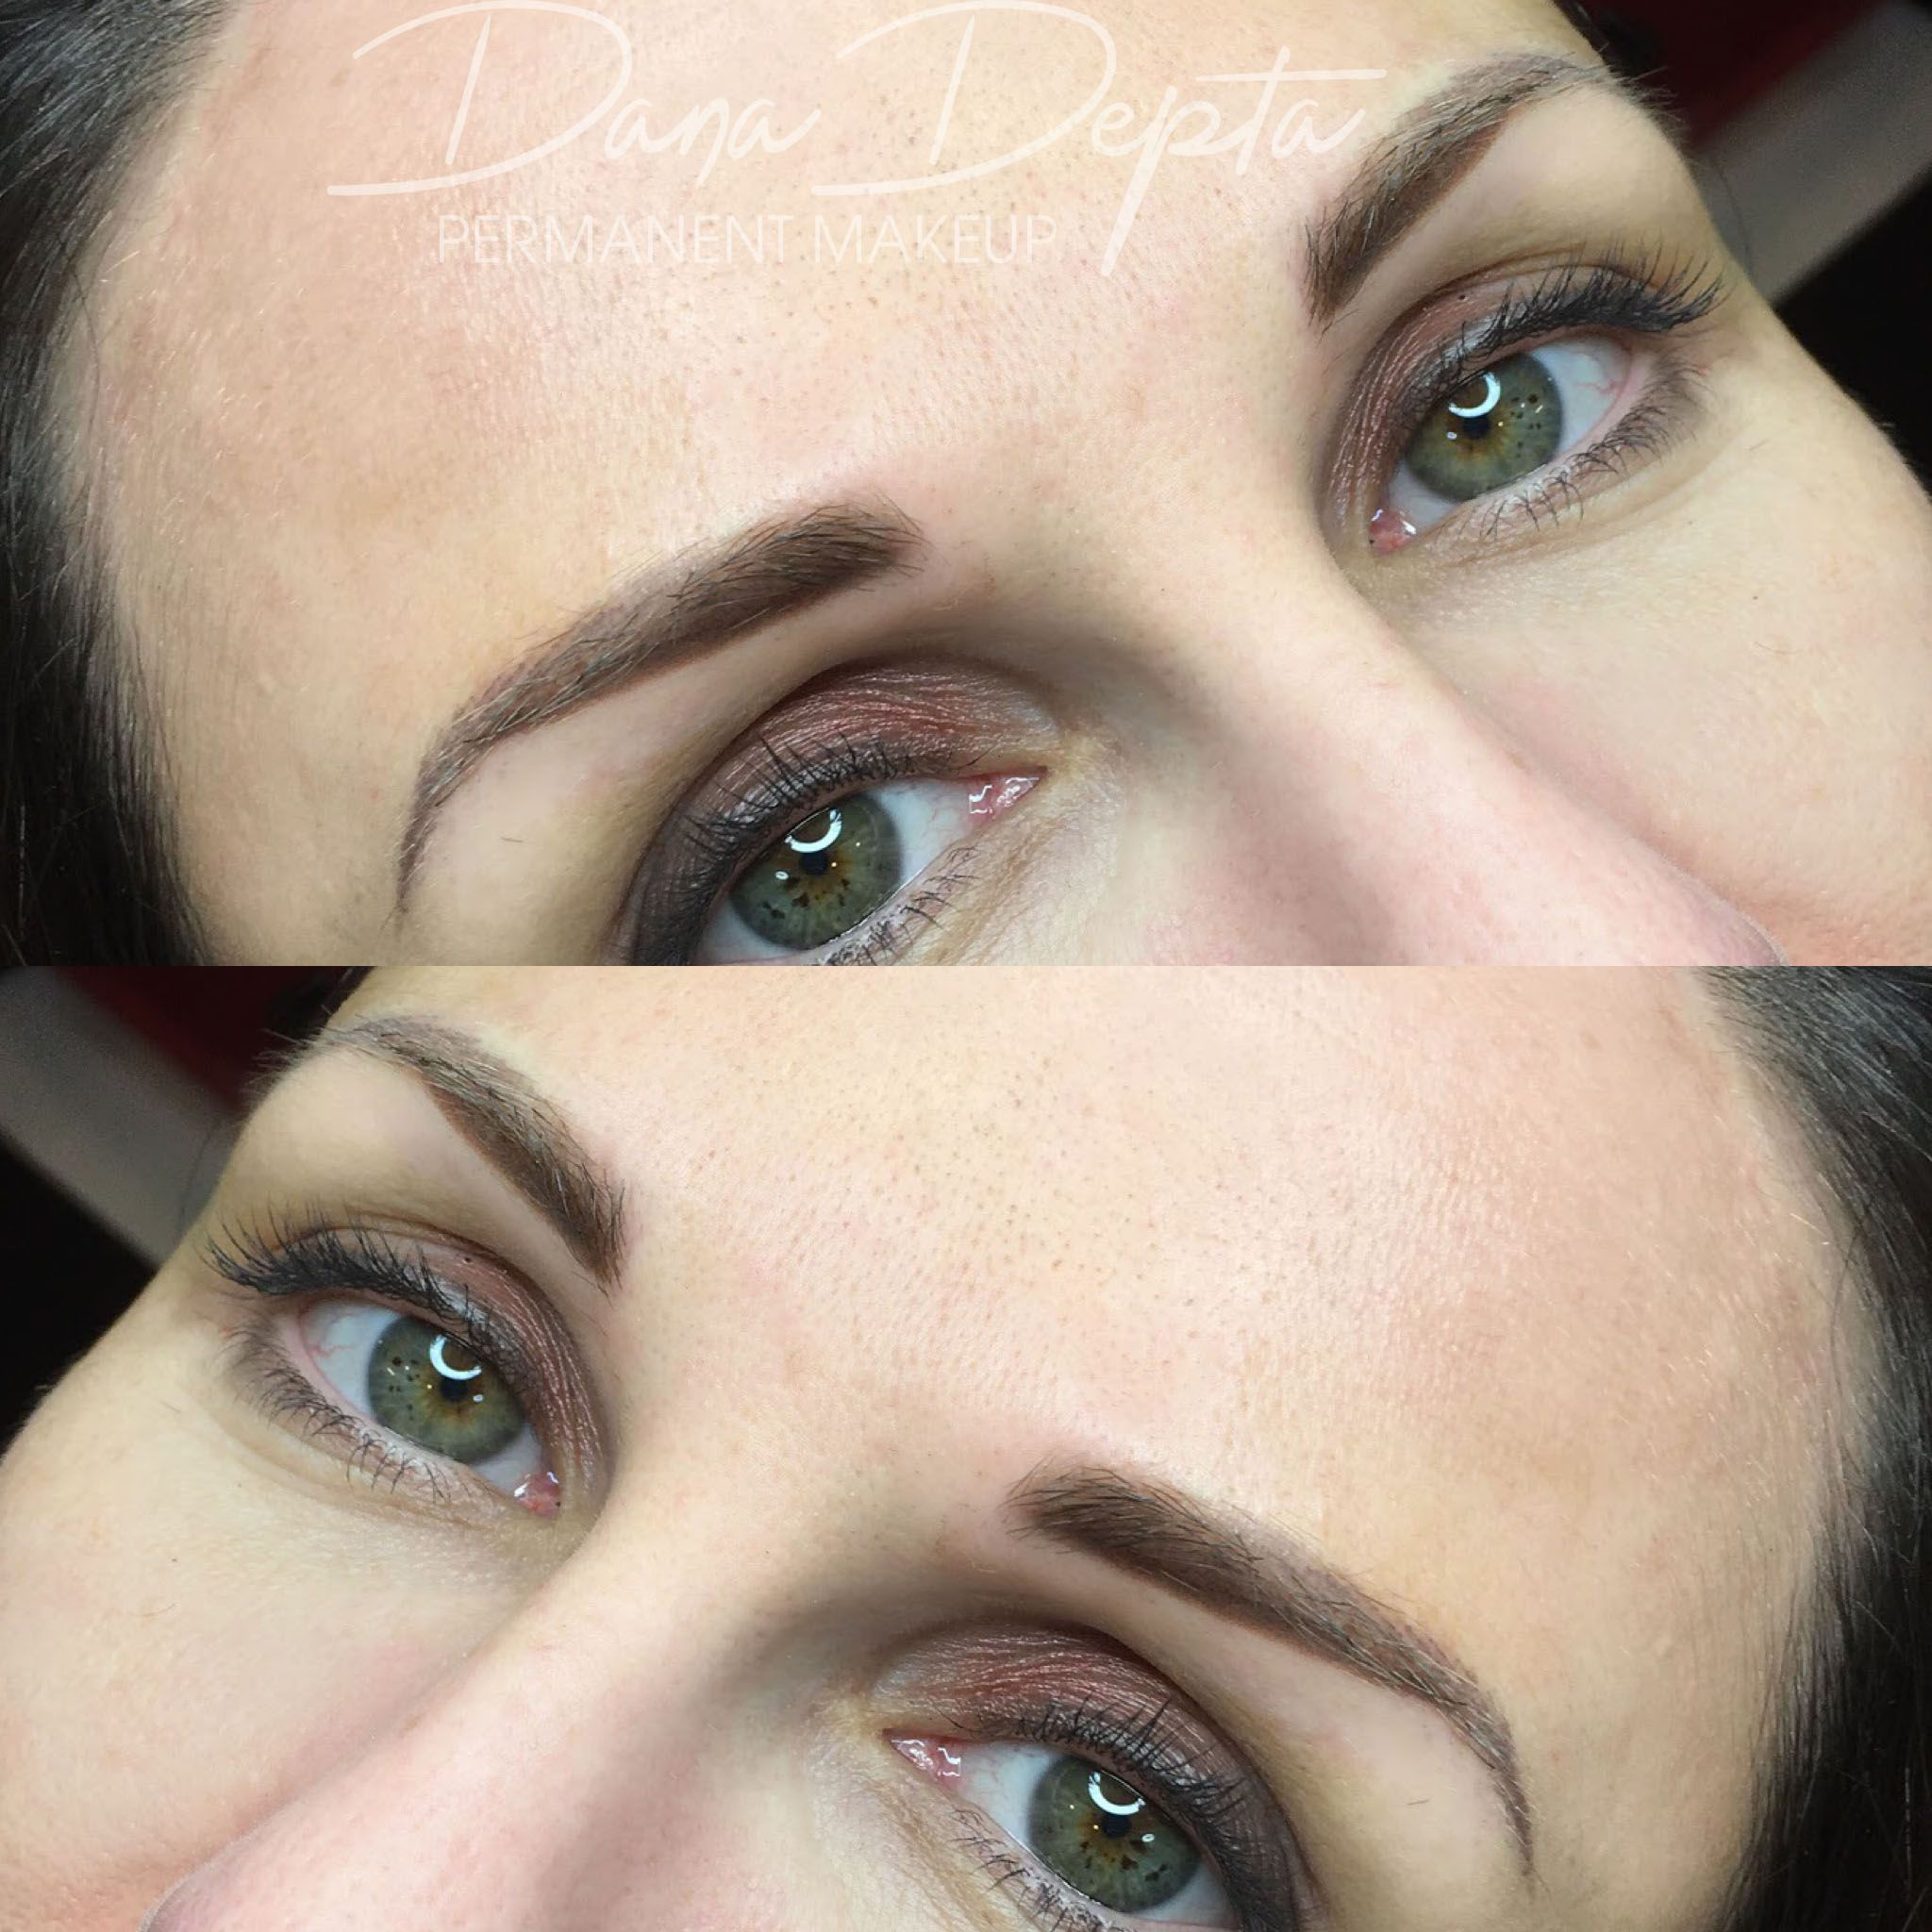 Powder Brows Can Fix Overplucked Brows Permanent makeup